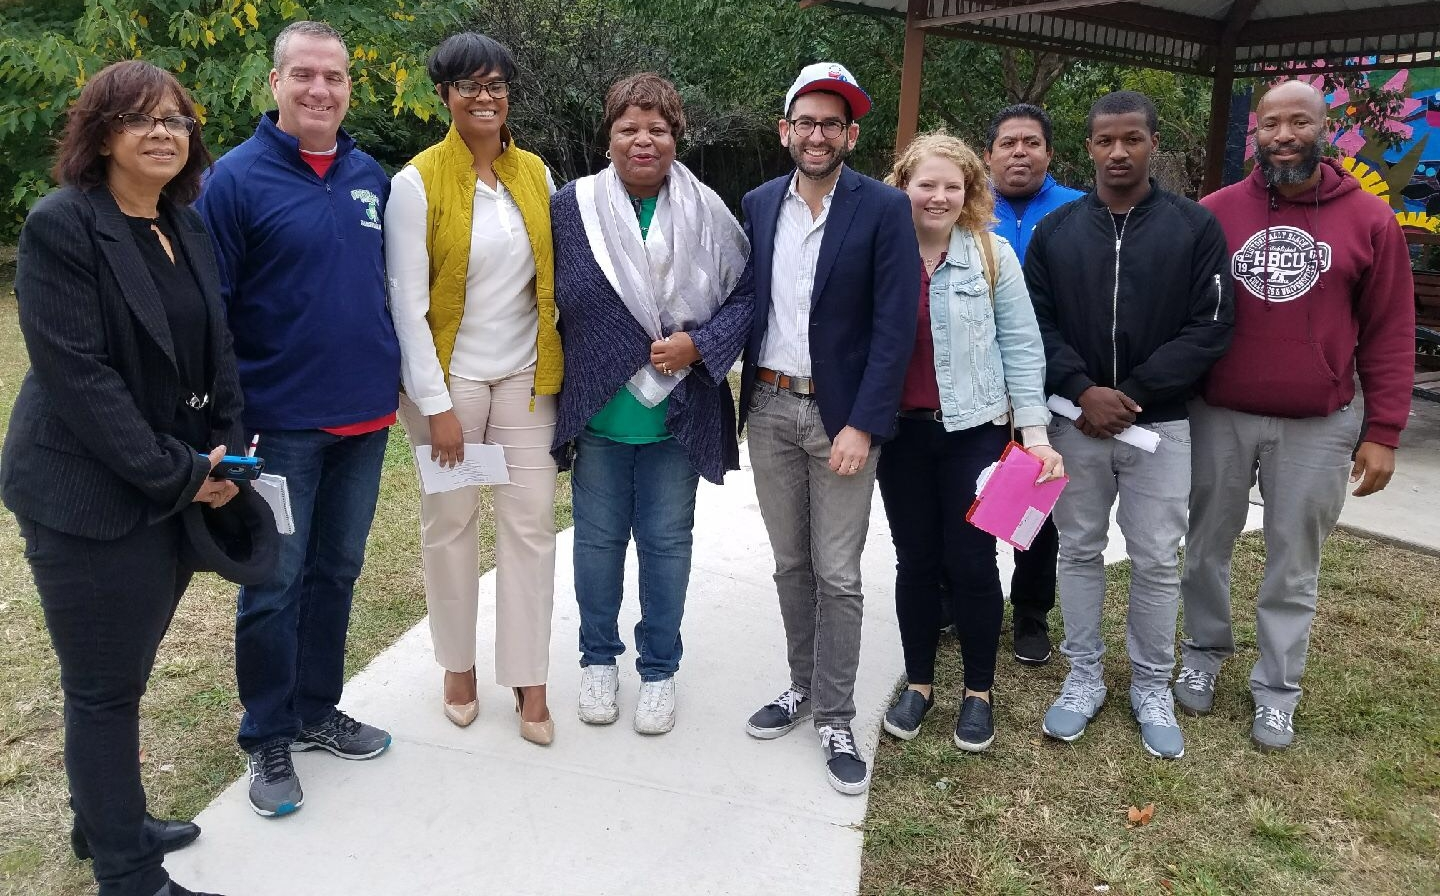 The Baker Playground Advisory Council meets with State Representative Morgan Cephas and Parks & Rec officials to advocate for renewed investment into their center.